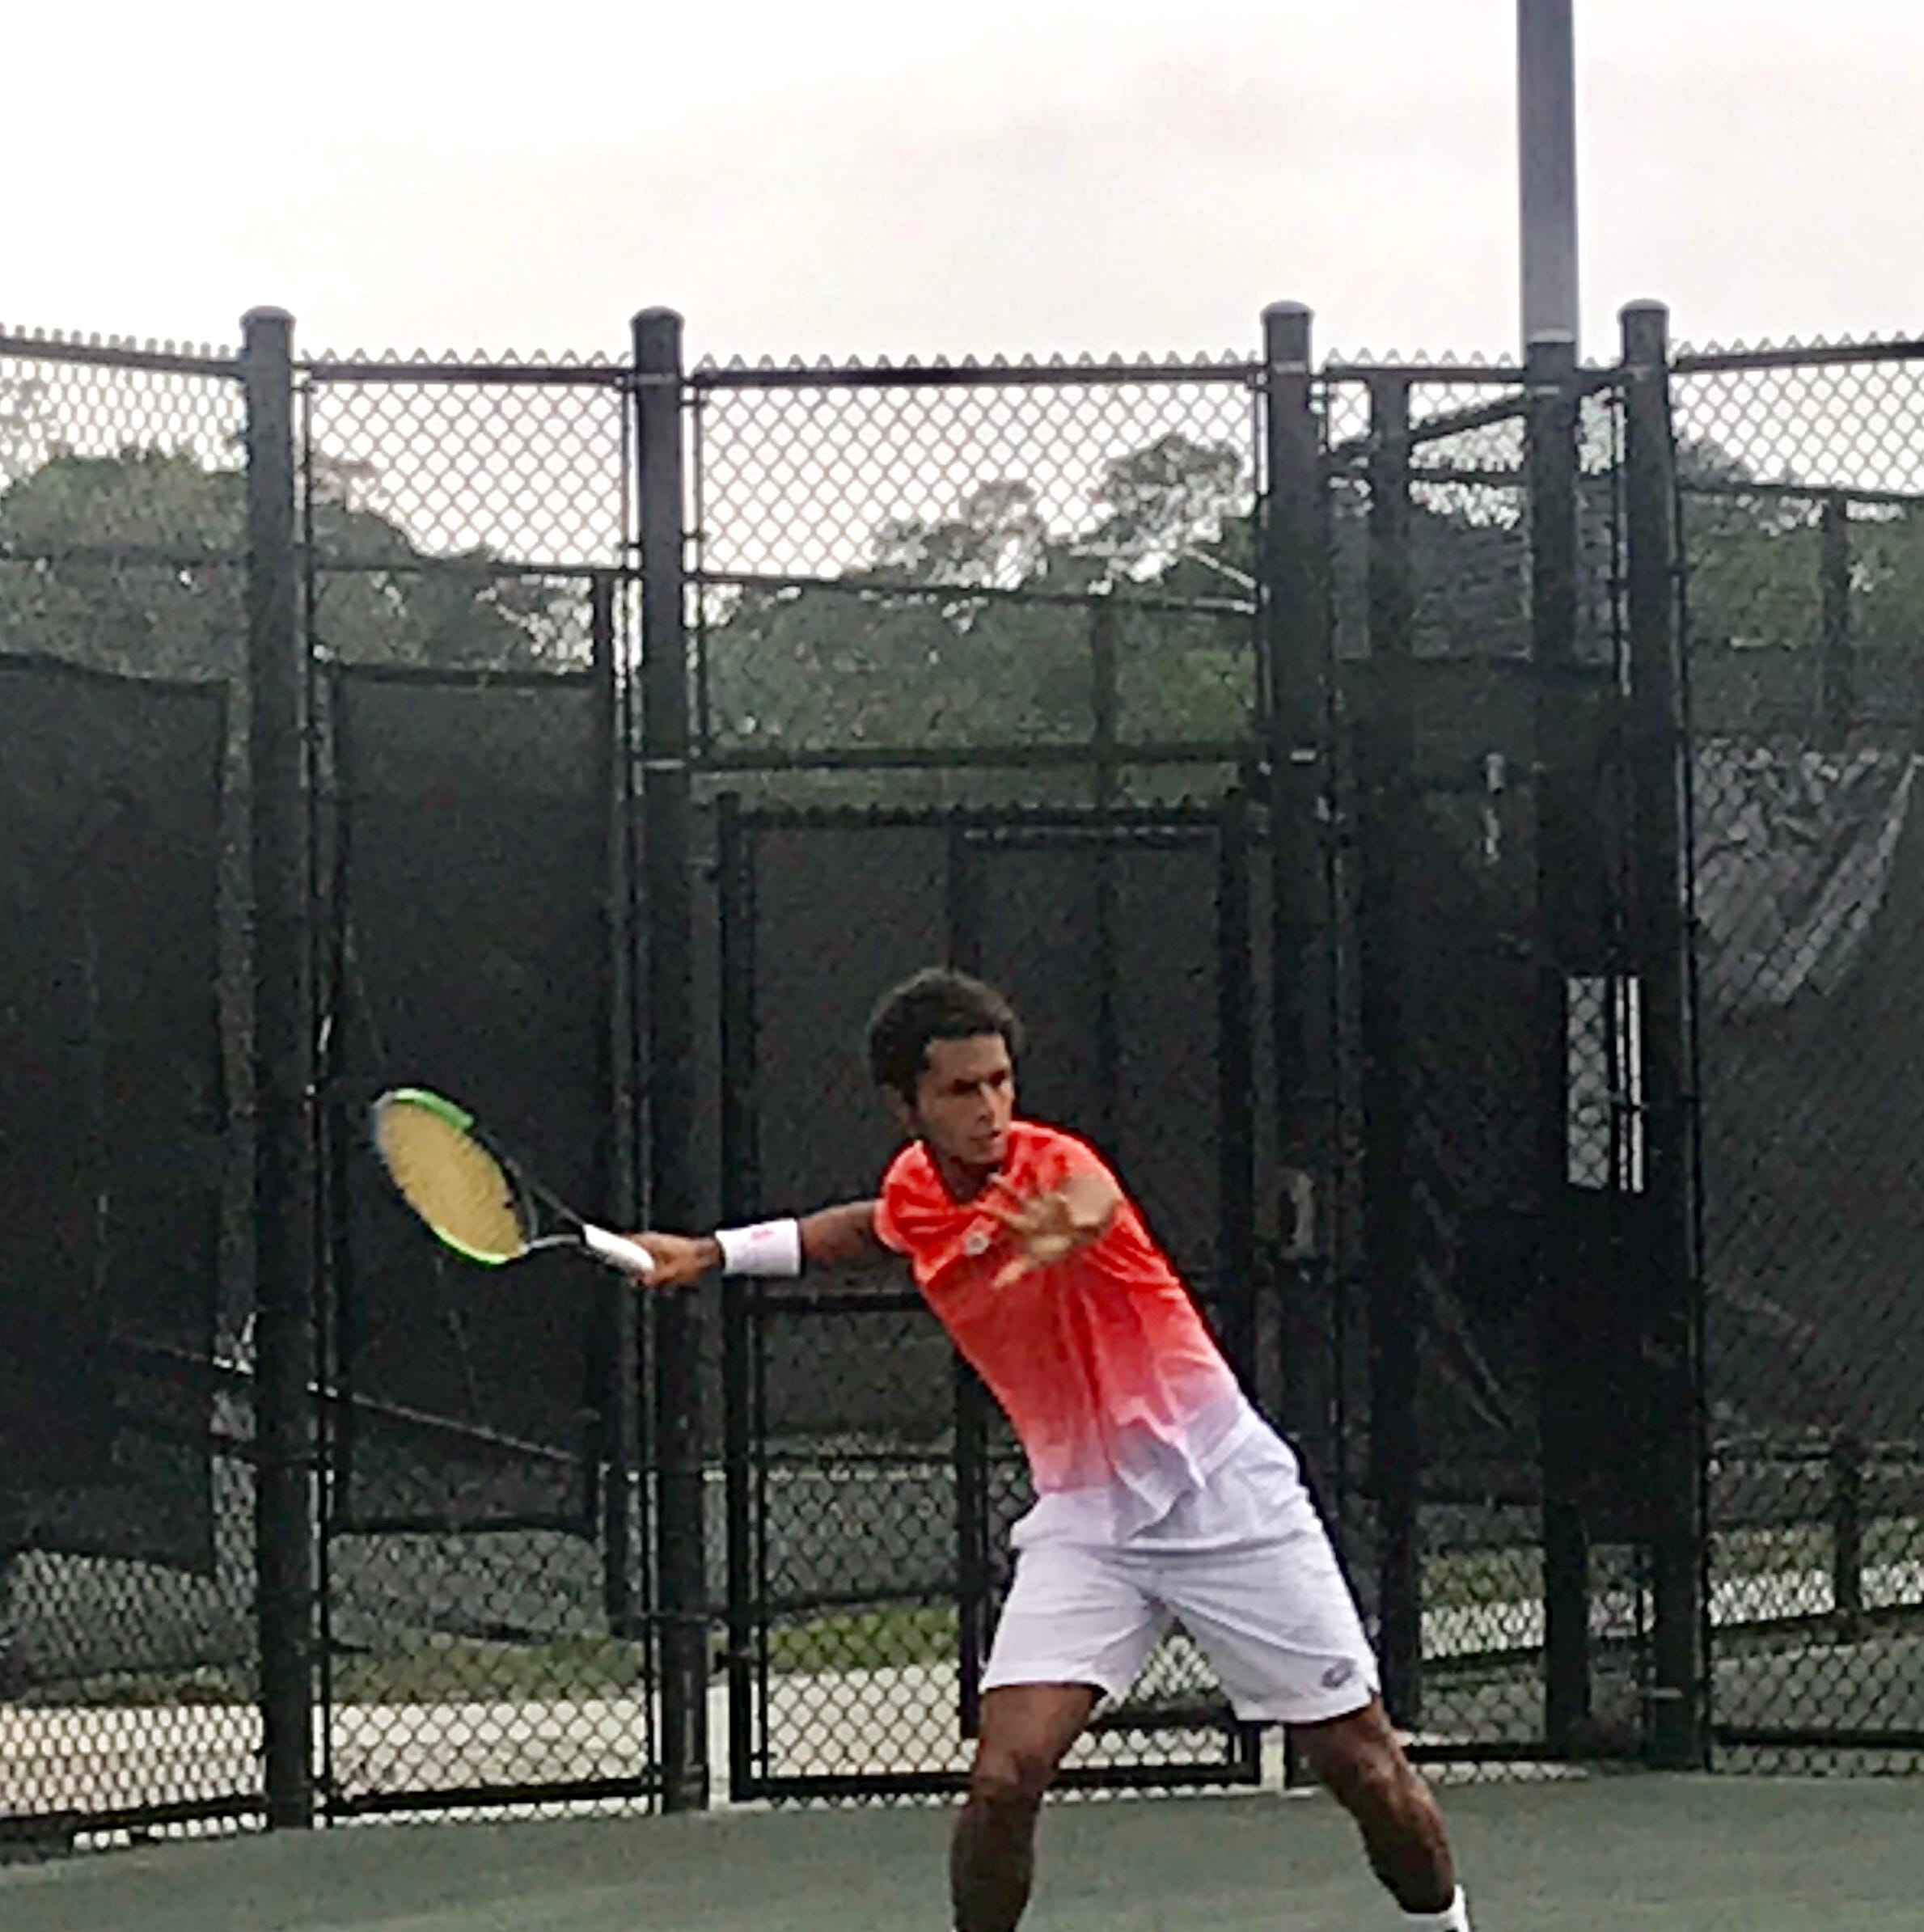 Top-seeded Varillas wins Pensacola M25 Tennis Championship